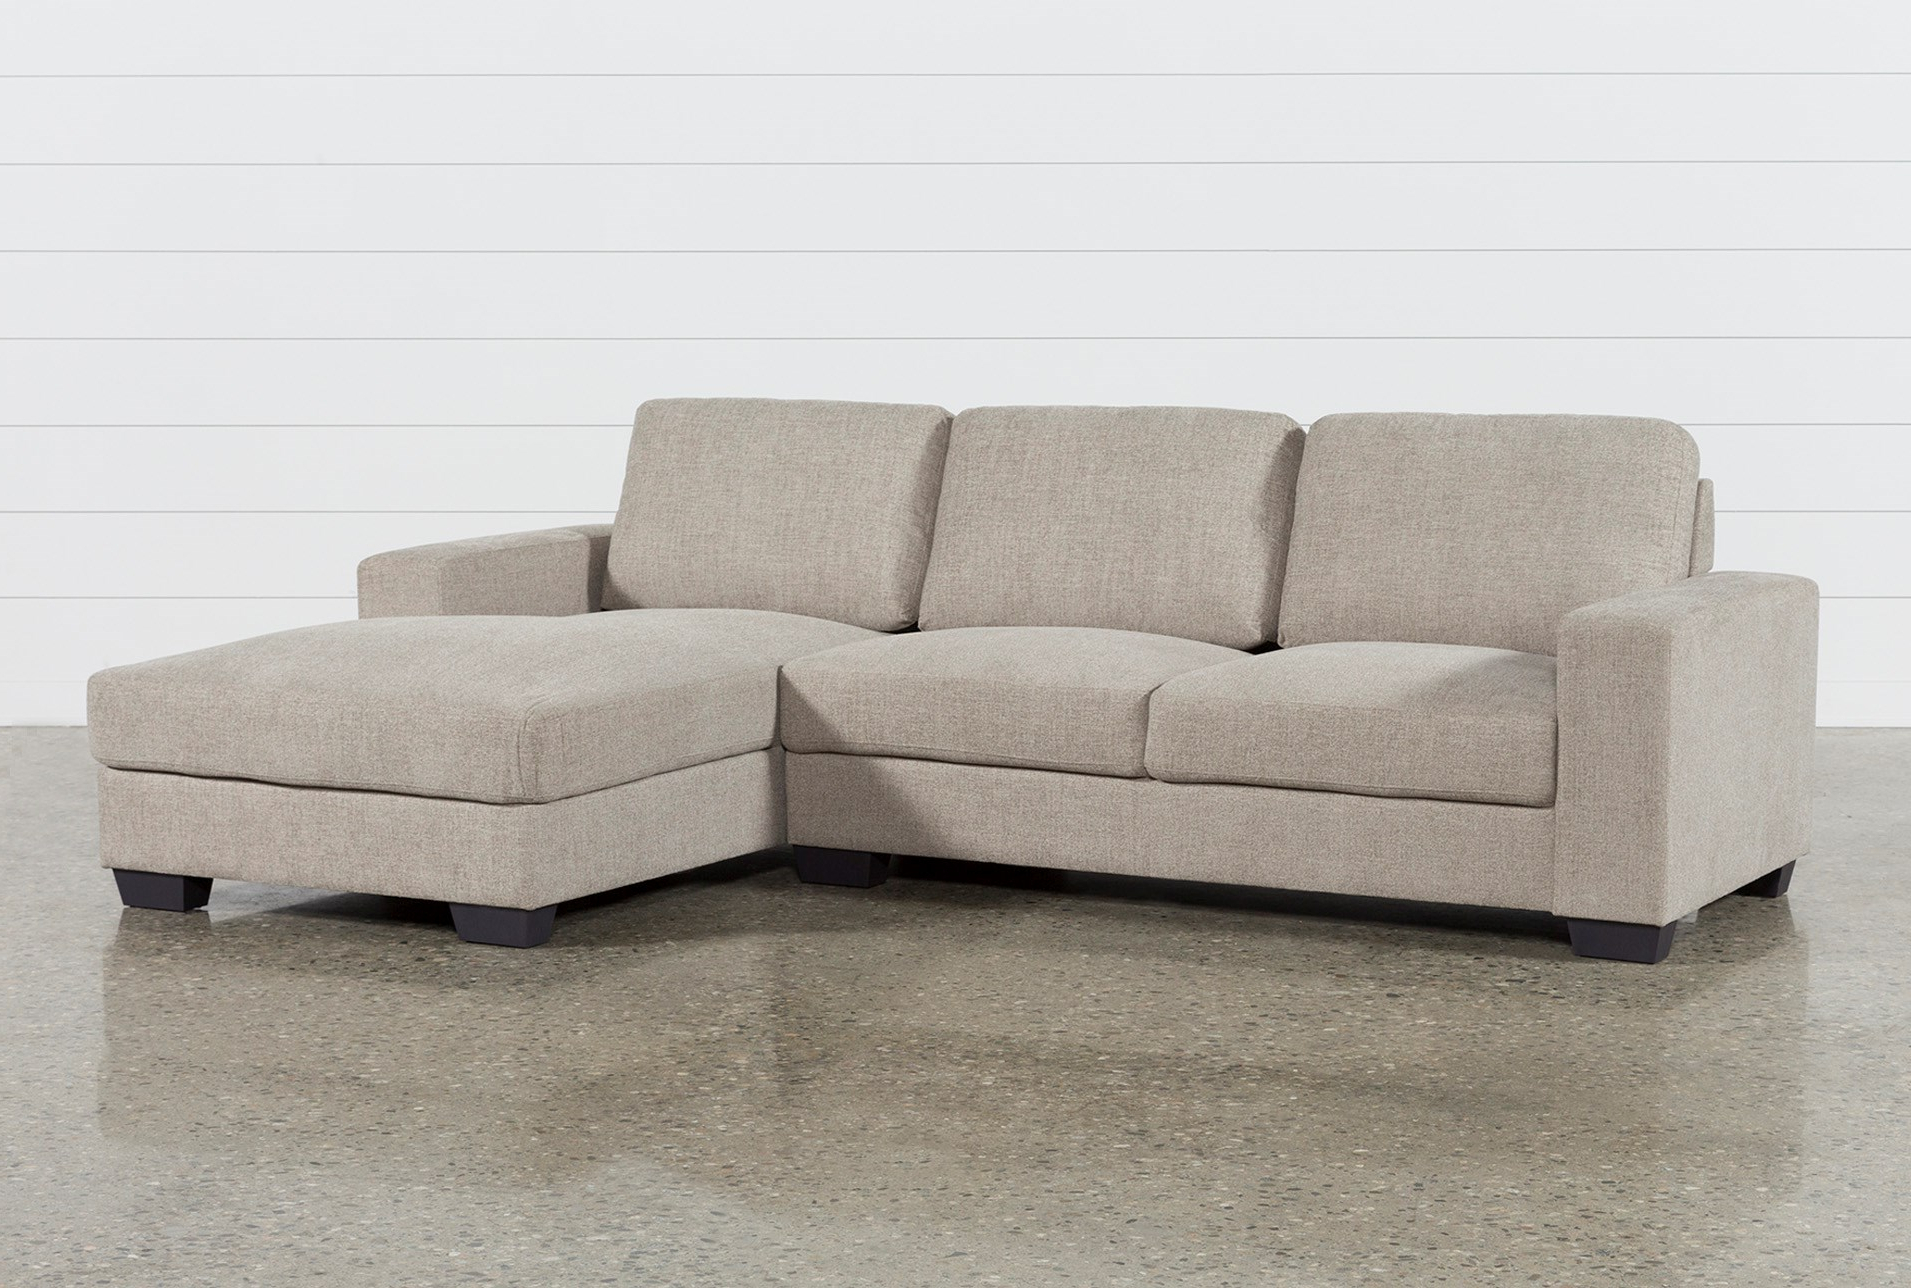 2 Piece Sectional With Chaise – Tidex In Popular Arrowmask 2 Piece Sectionals With Raf Chaise (View 13 of 20)